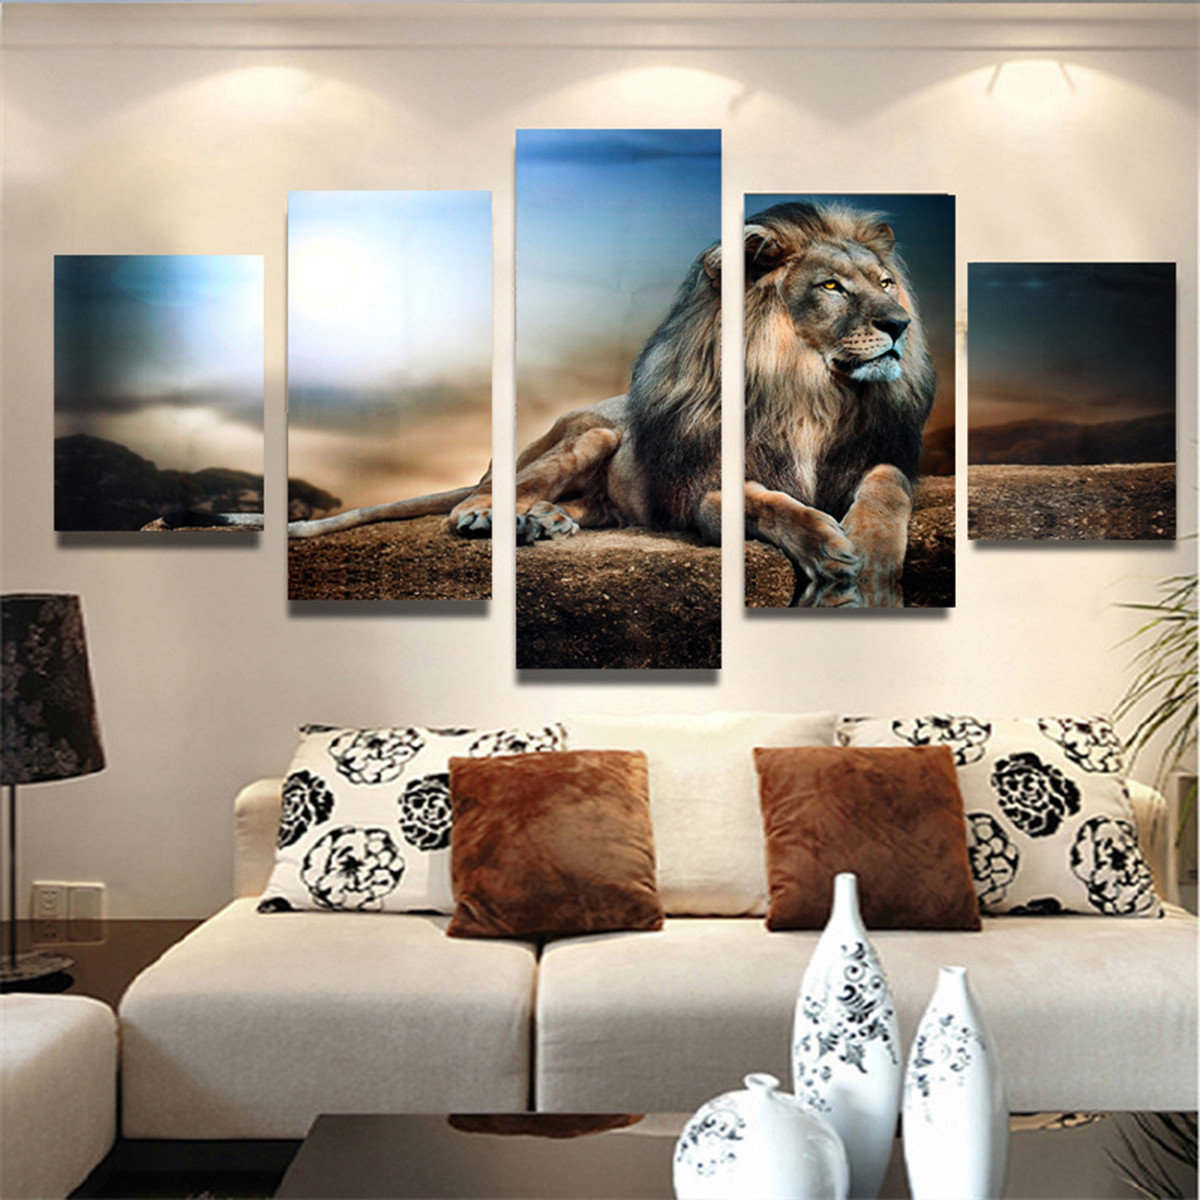 5Pcs/set Modern Abstract Sitting Lion Oil Painting Canvas Picture Print Wall Art Home Decoration Present Gift